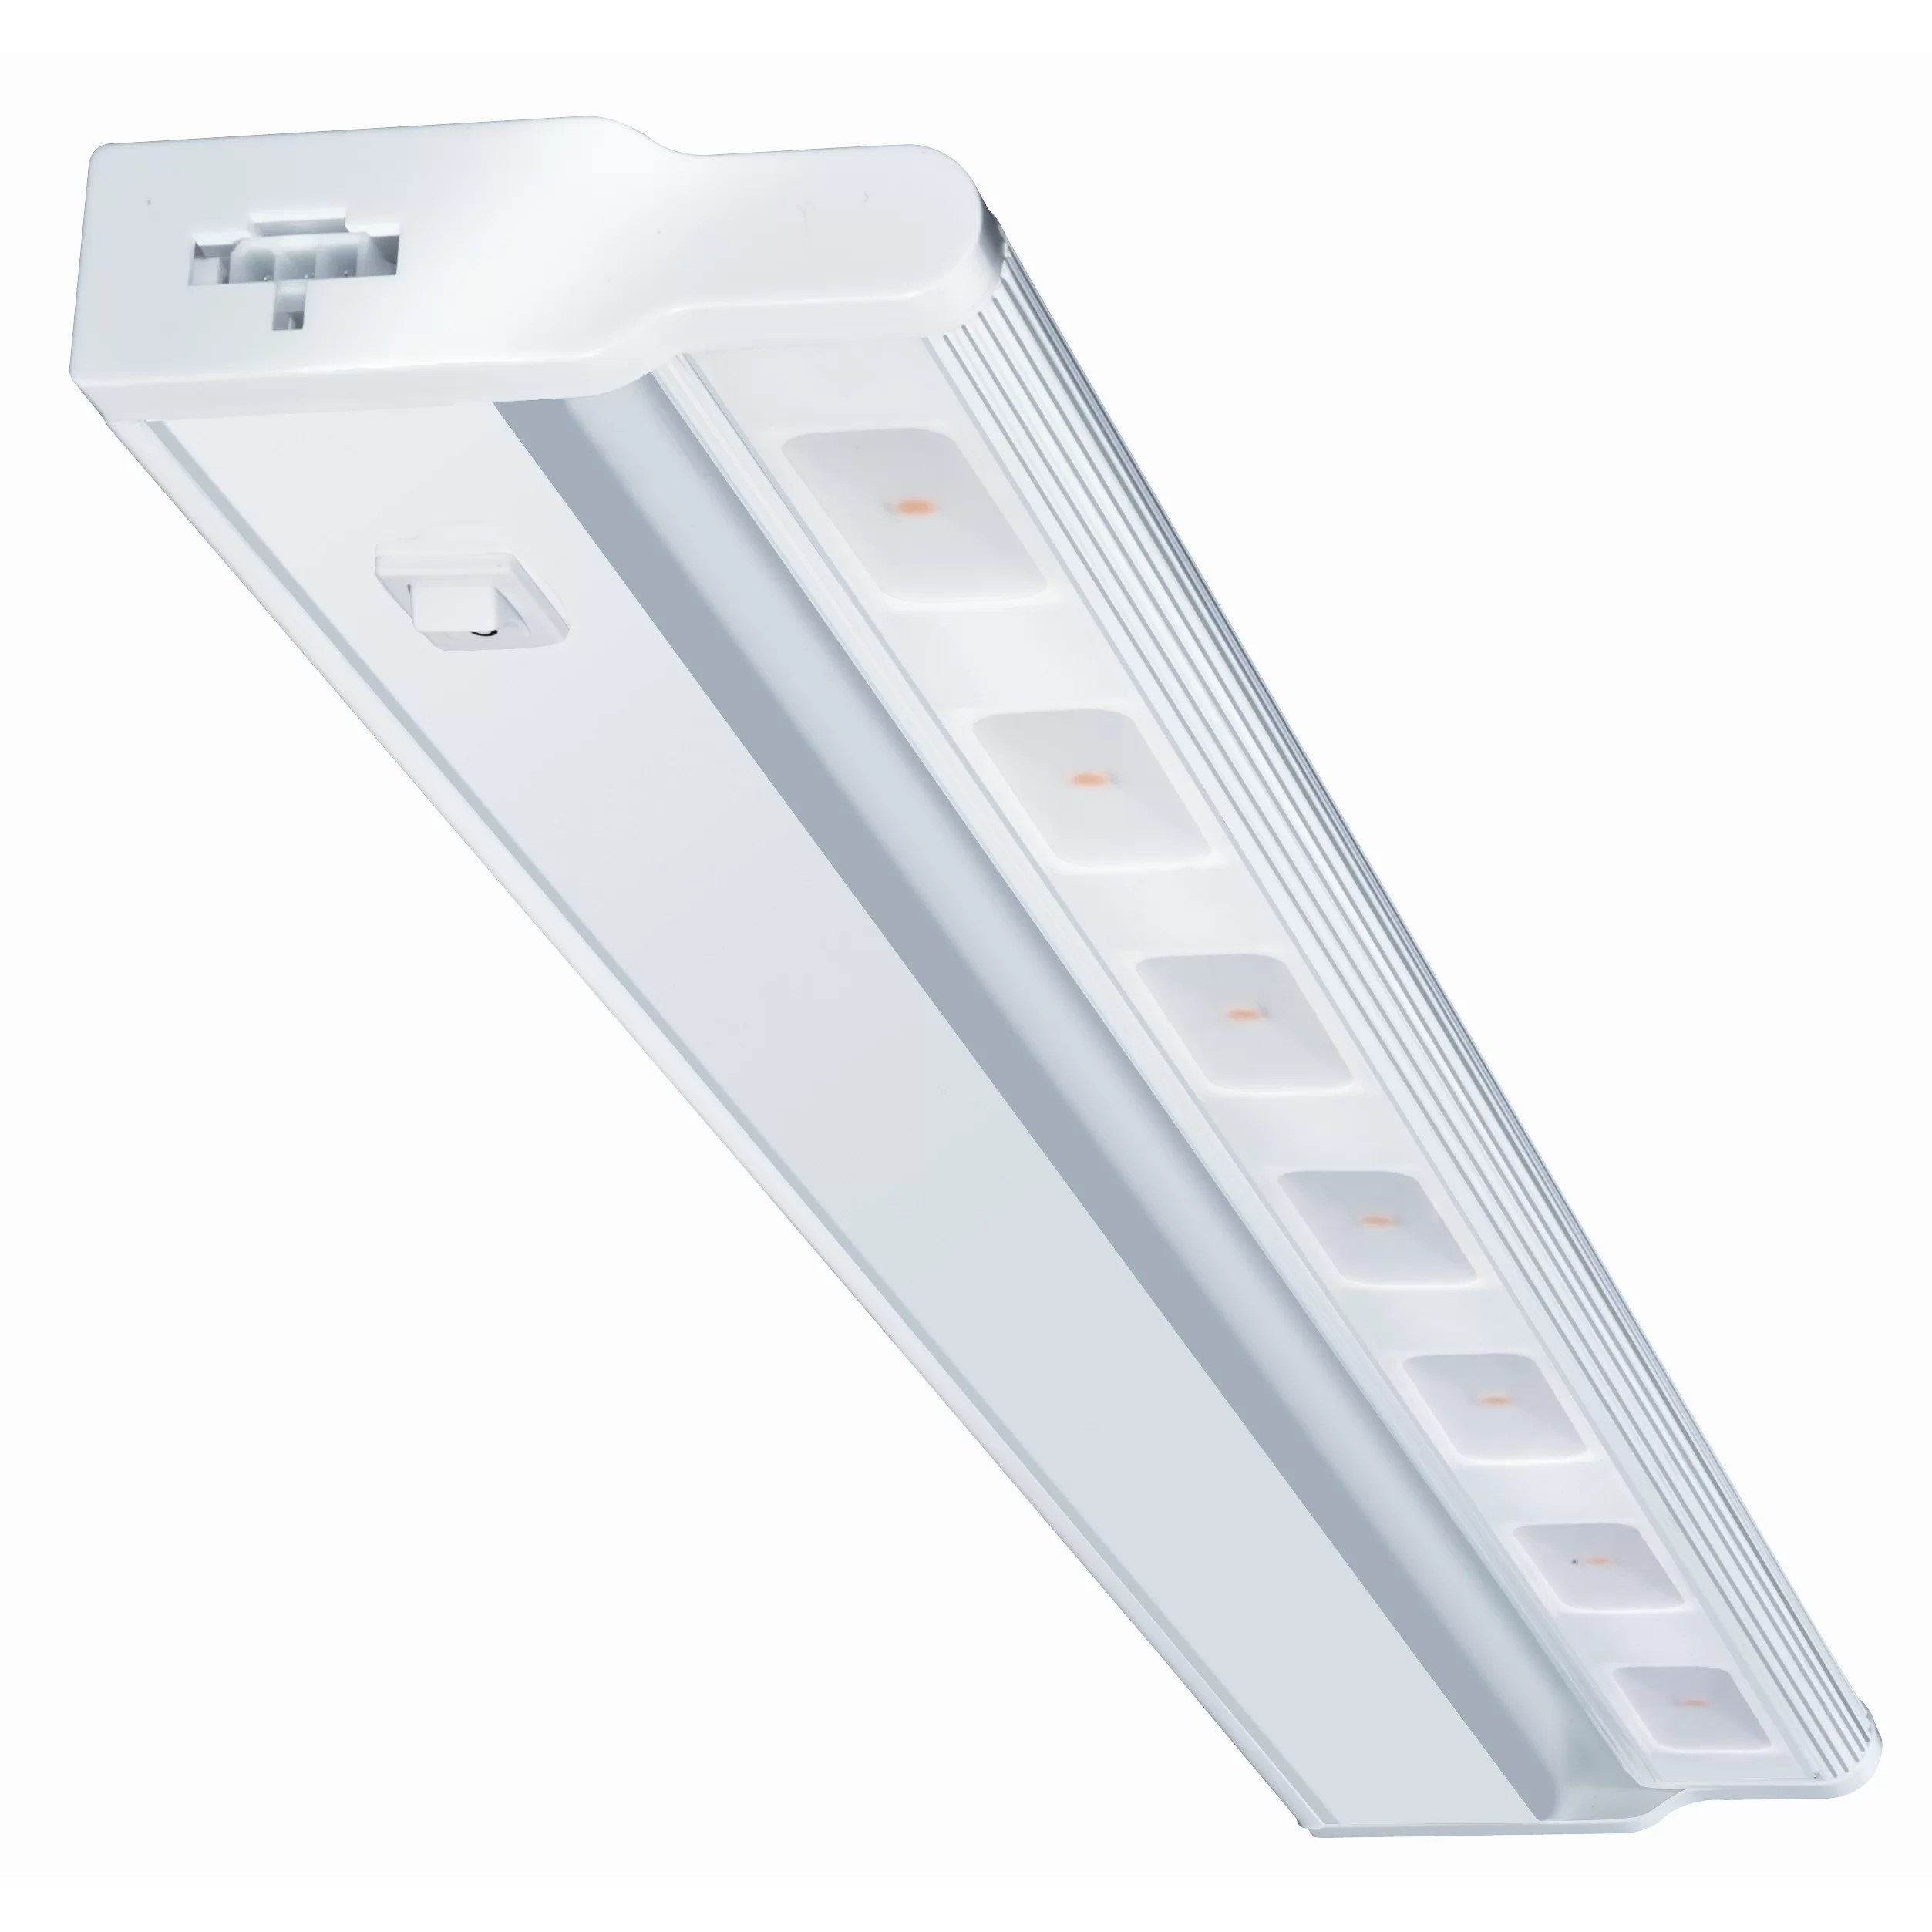 Lithonia Lighting 3 LED Under Cabinet Bar Light  Reviews